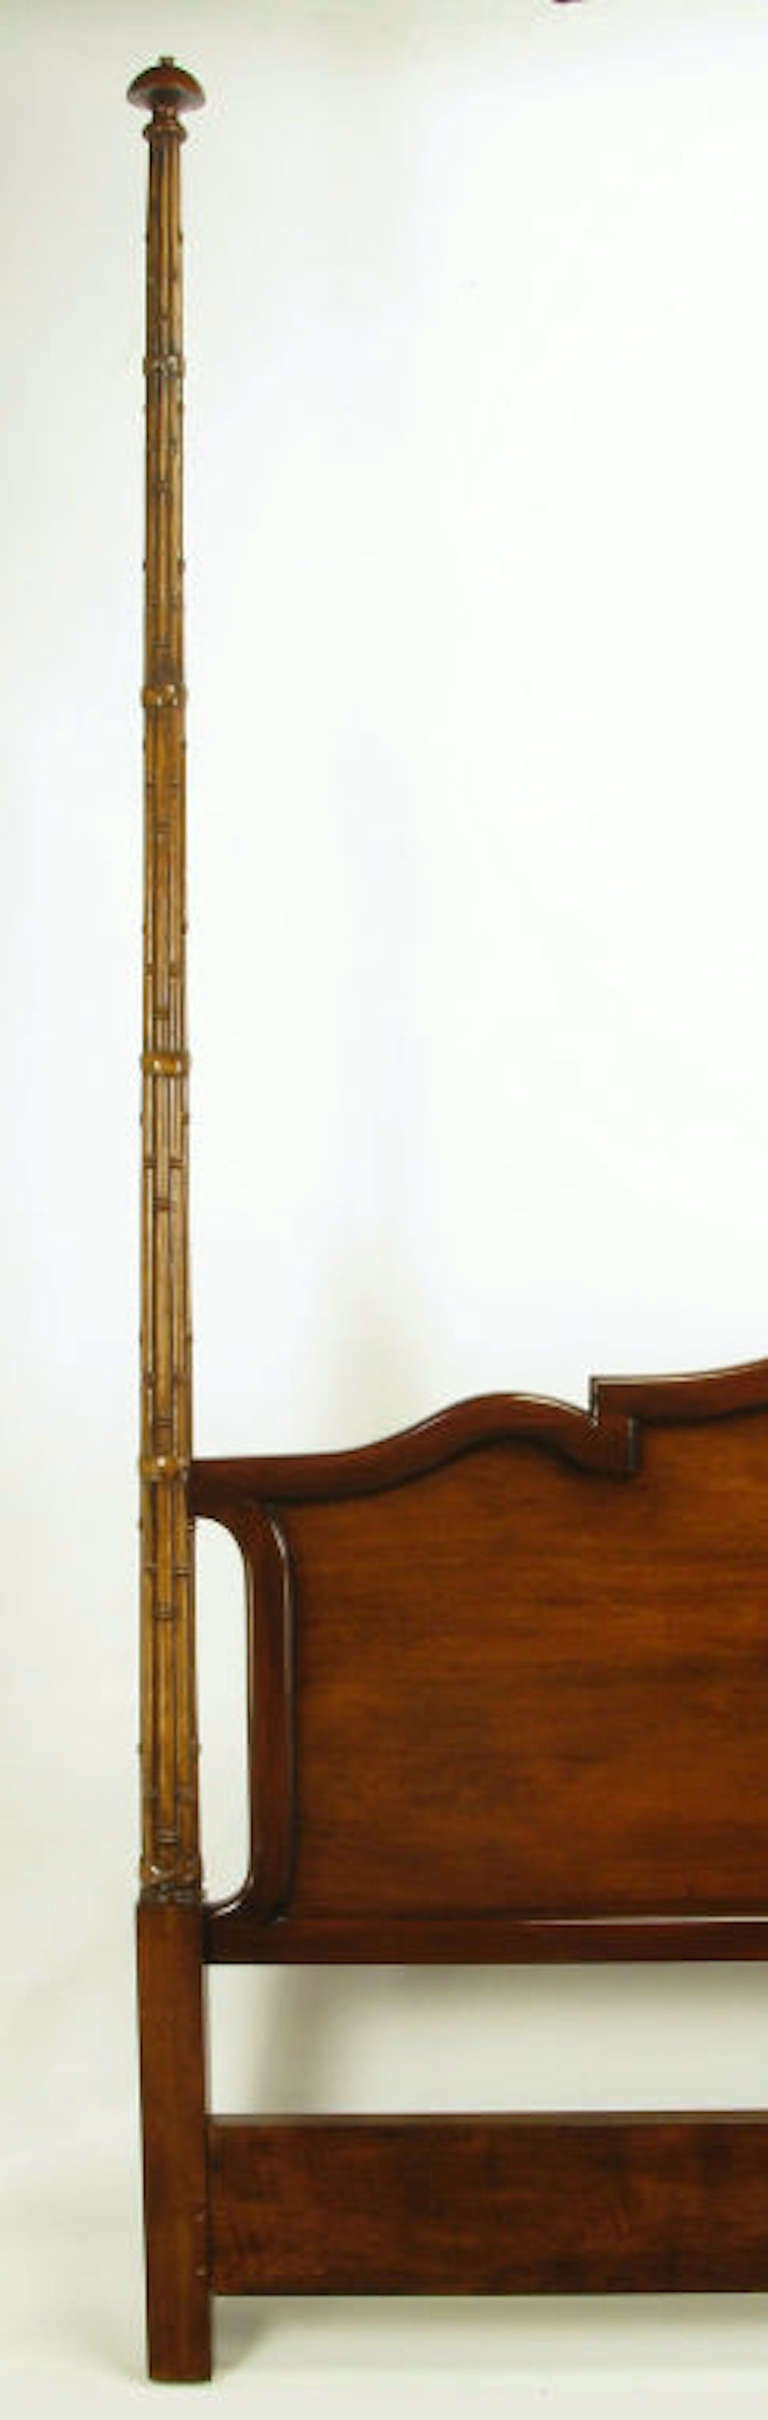 Tall Mahogany King Bed with Reeded Bamboo Posts For Sale 1